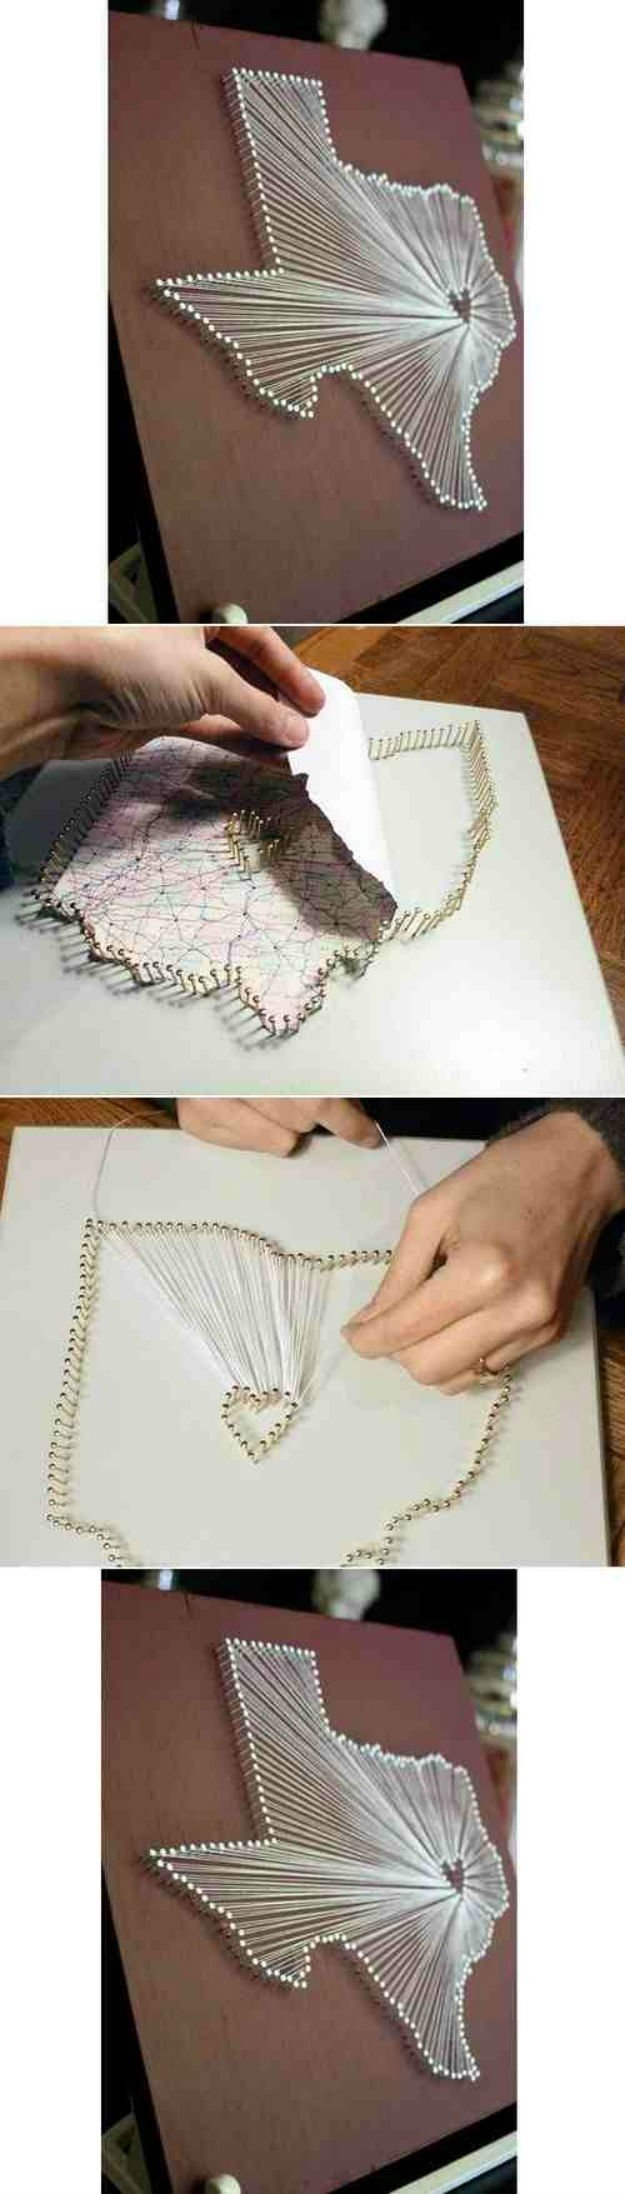 10 Fashionable Romantic Christmas Gift Ideas For Girlfriend christmas gifts for girlfriends diy projects craft ideas how tos 5 2021